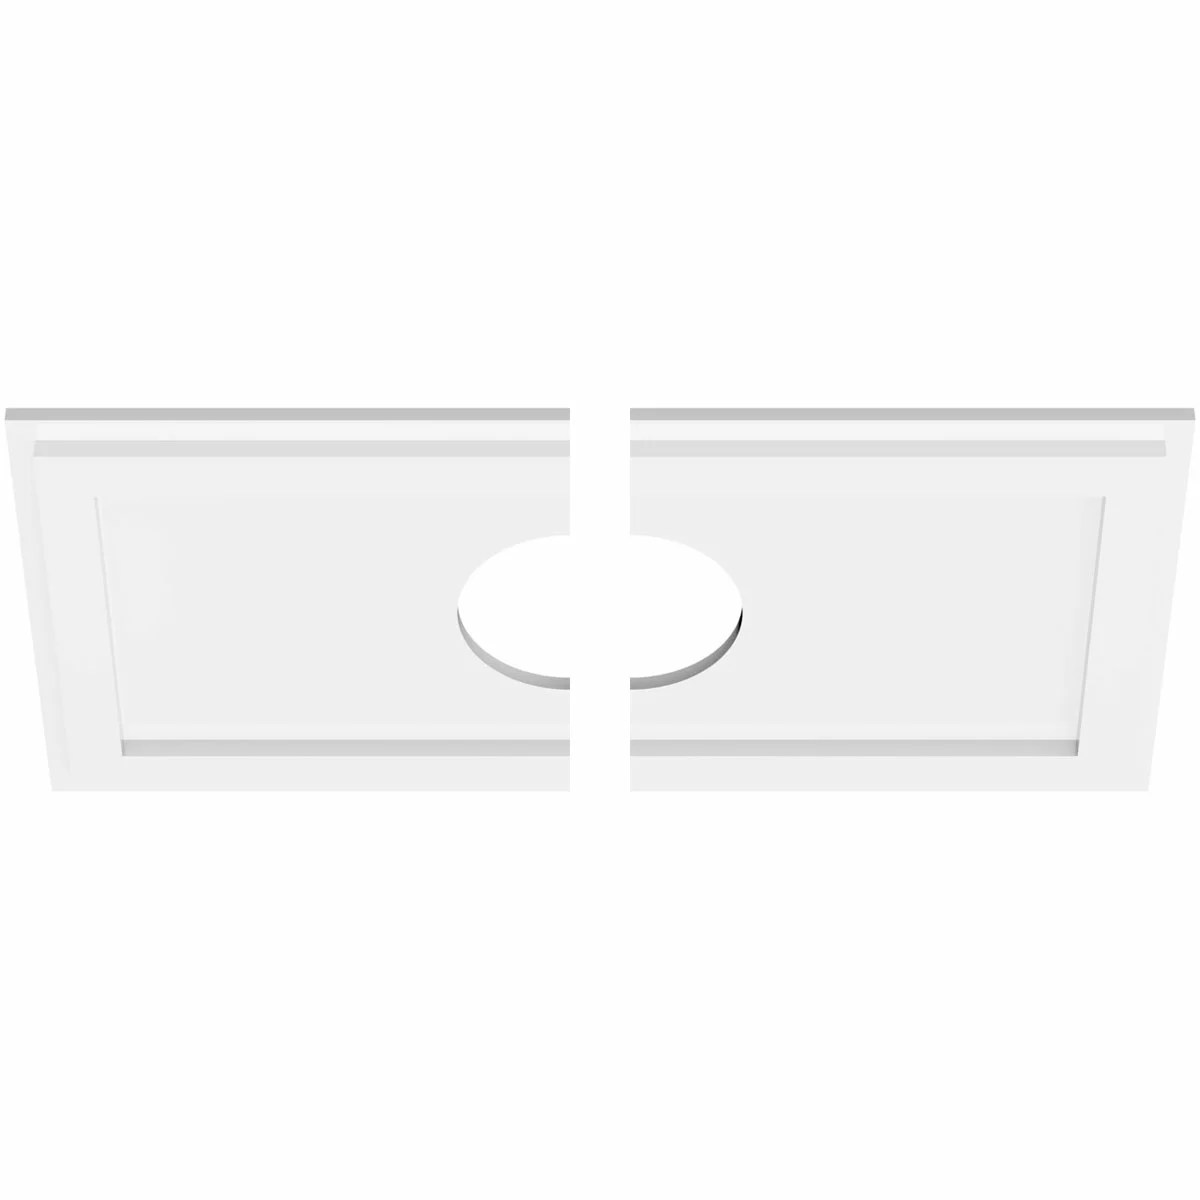 Ekena Millwork Rectangle Architectural Grade Pvc Ceiling